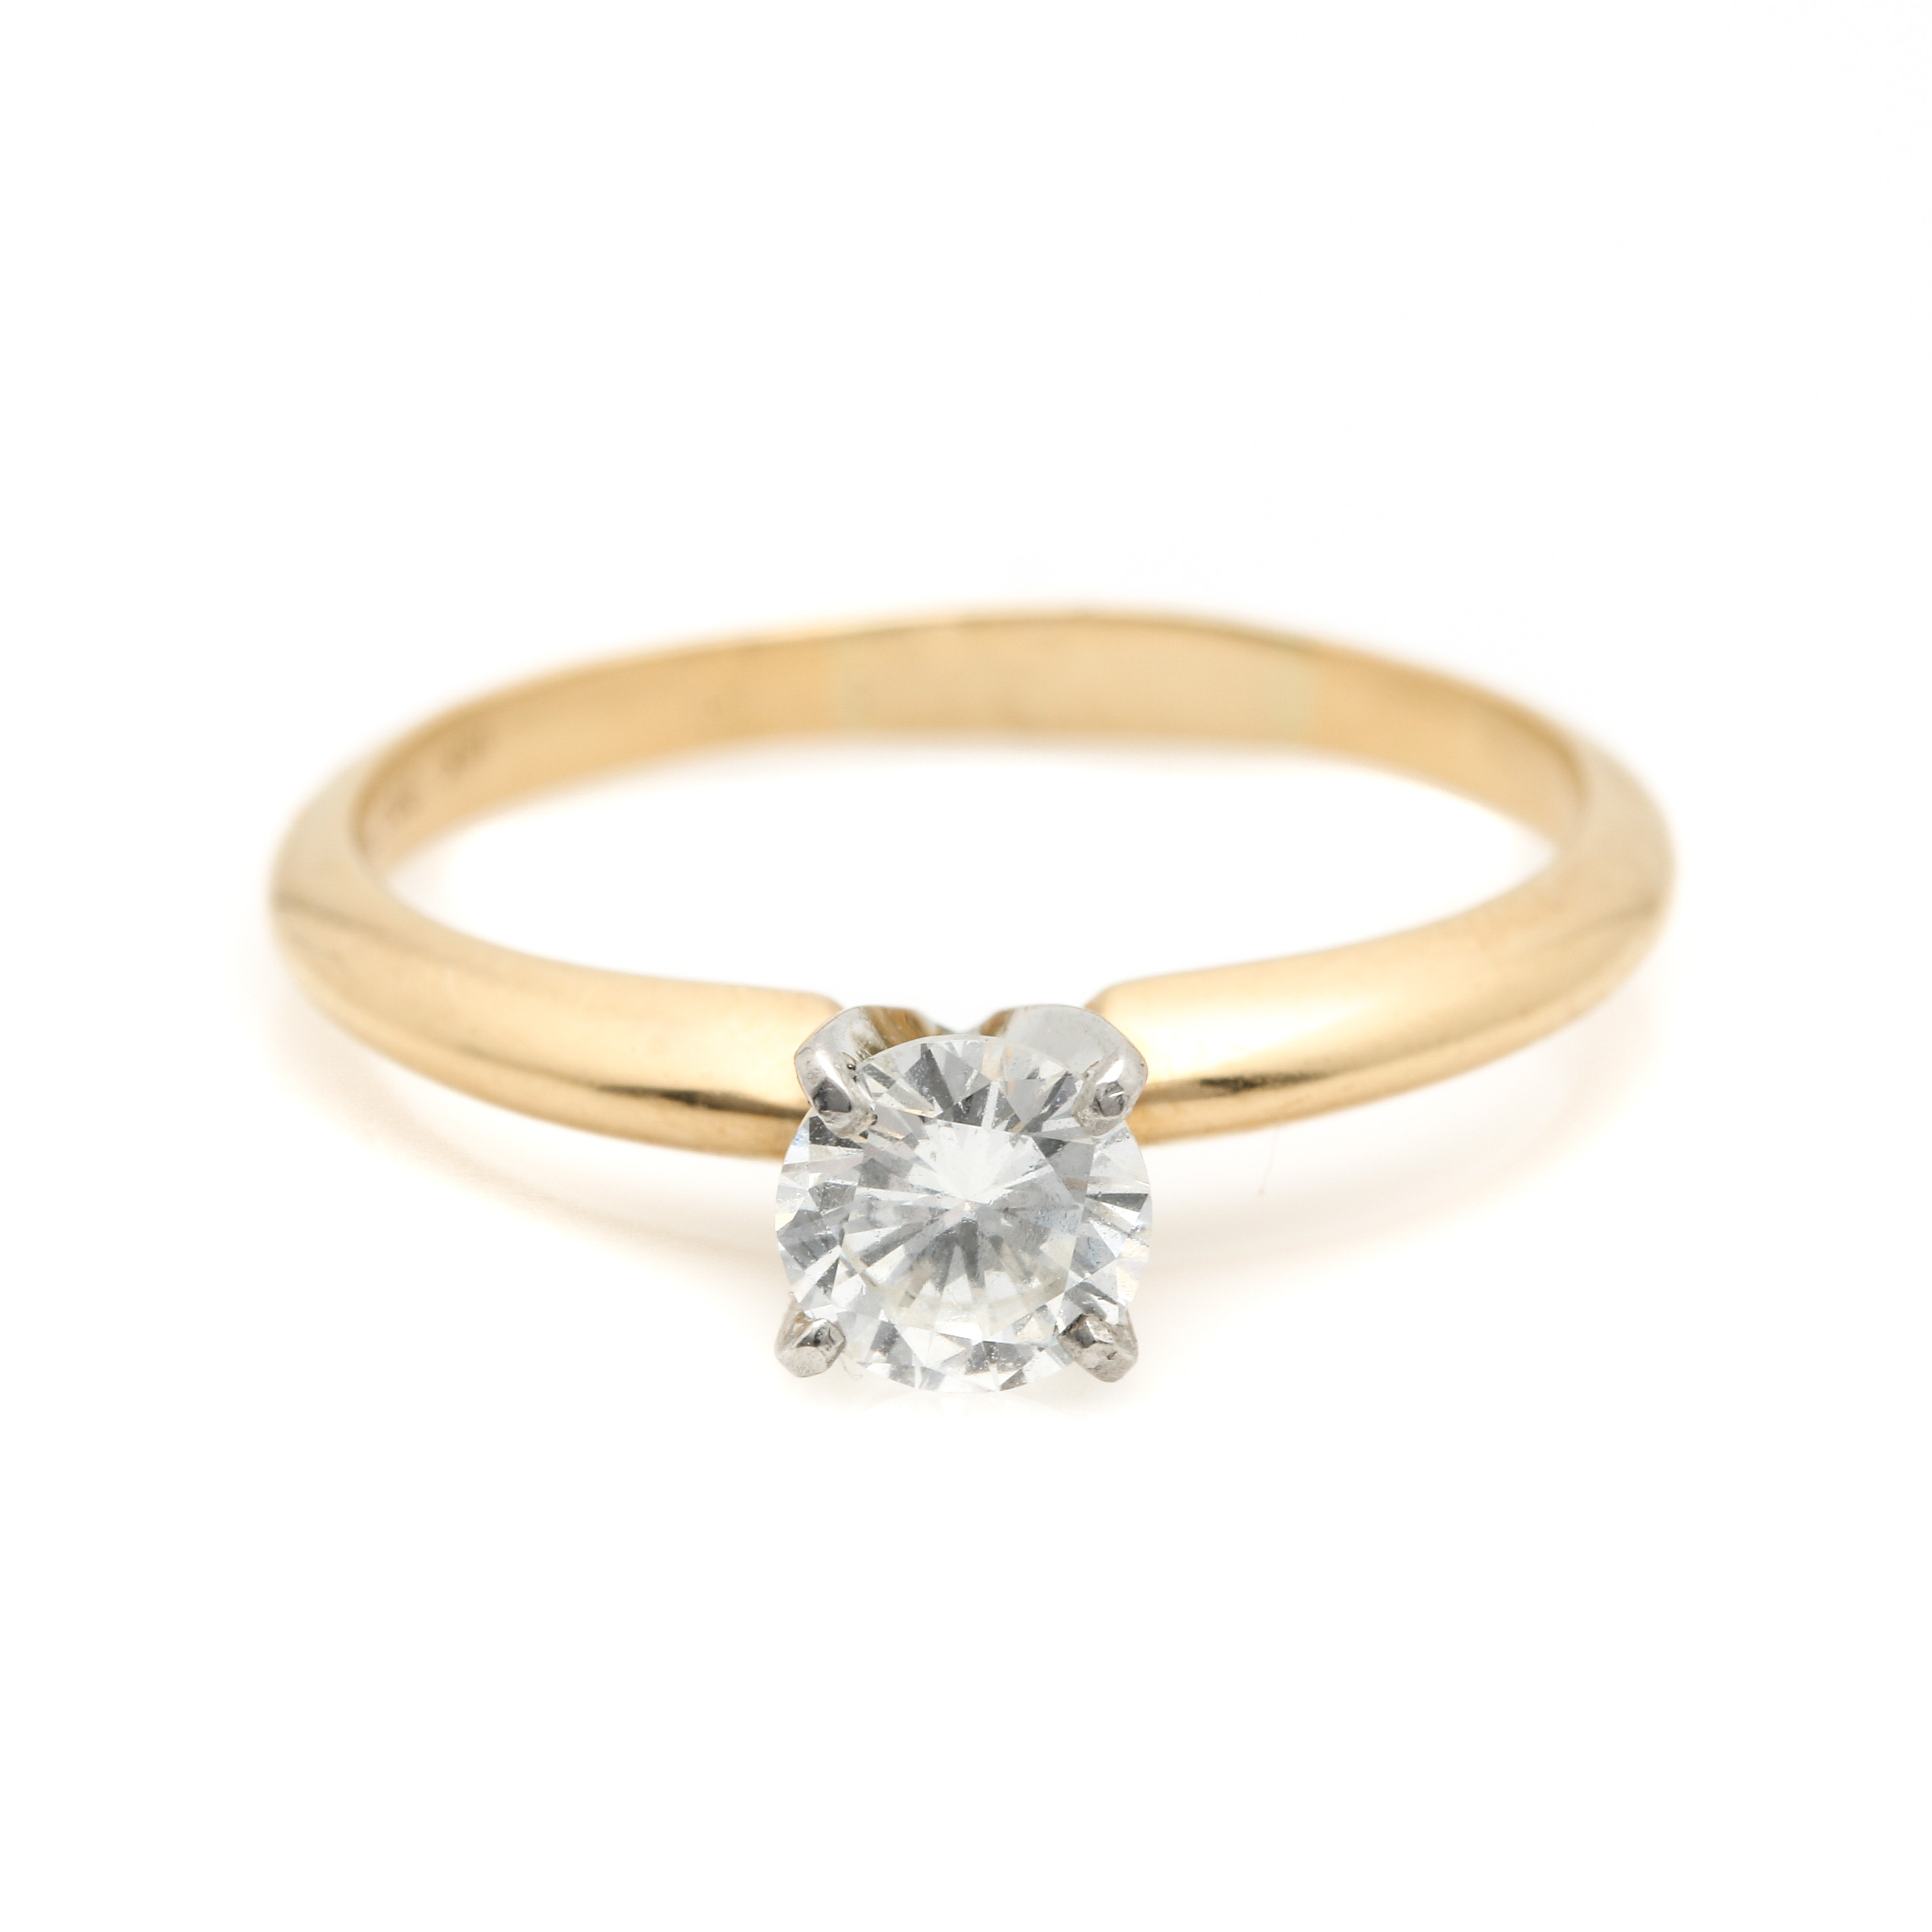 18K Yellow Gold and Platinum Diamond Solitaire Ring